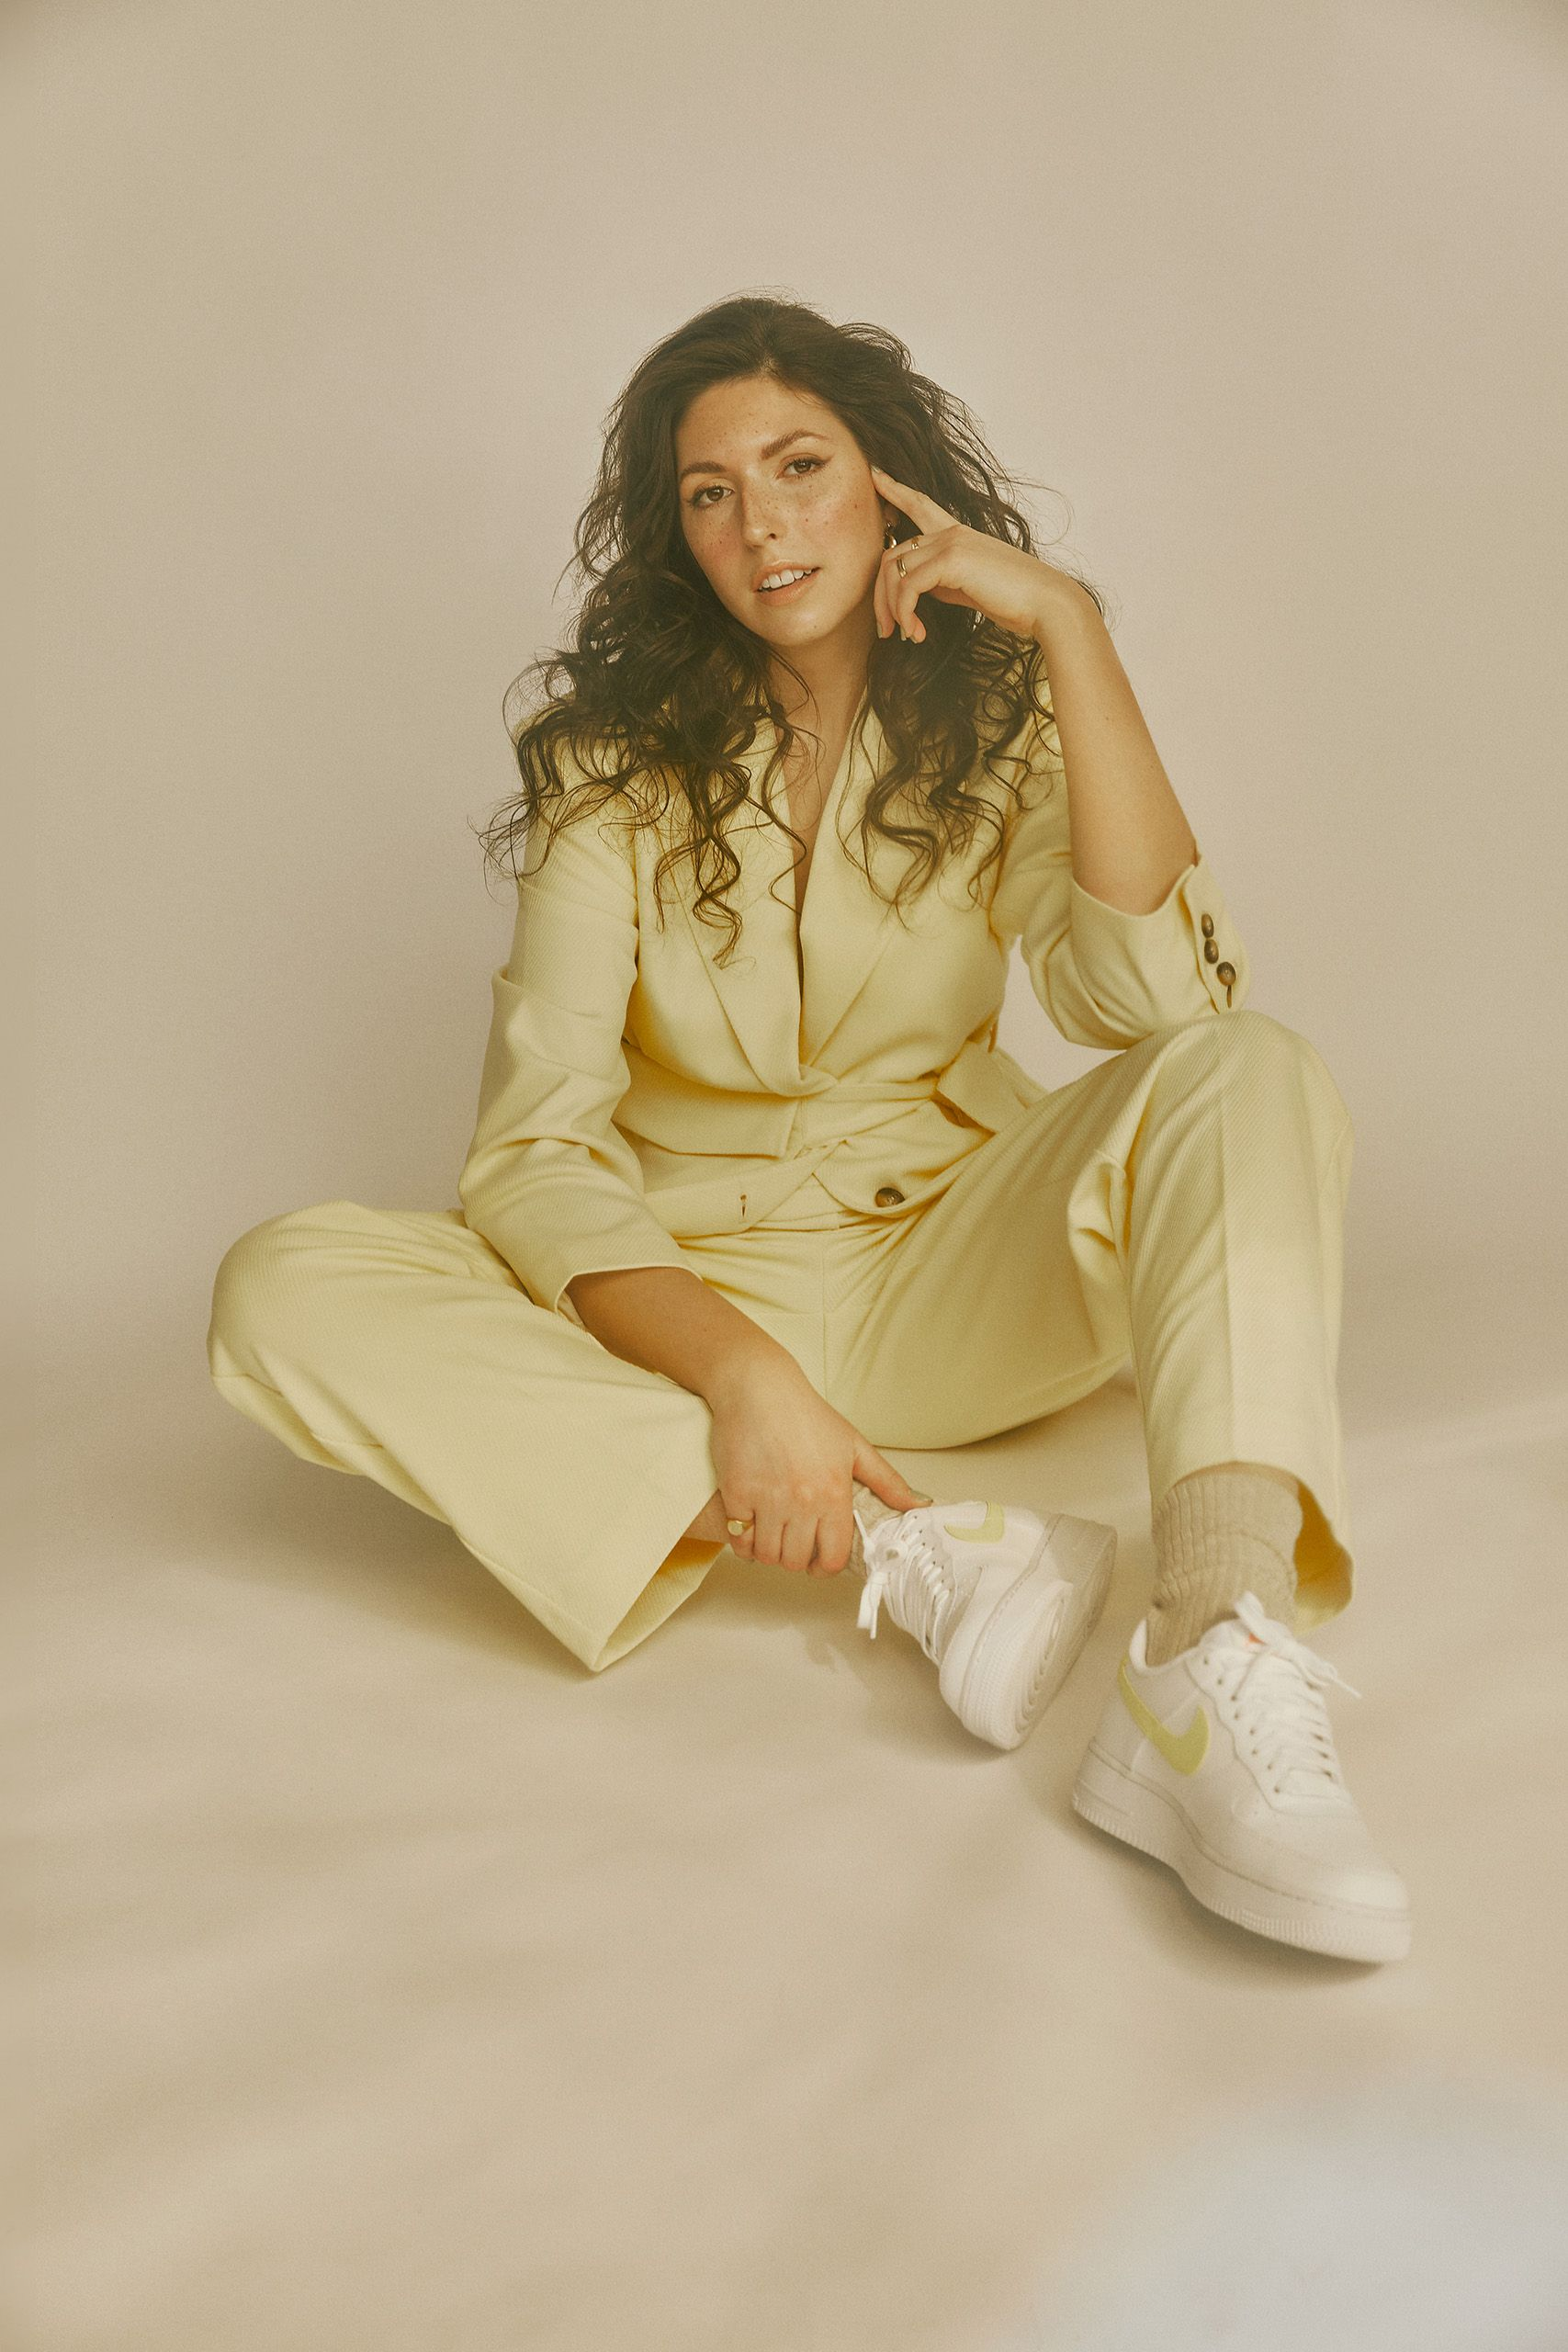 Woman singer songwriter sitting on the ground yellow outfit white backdrop photography Montreal